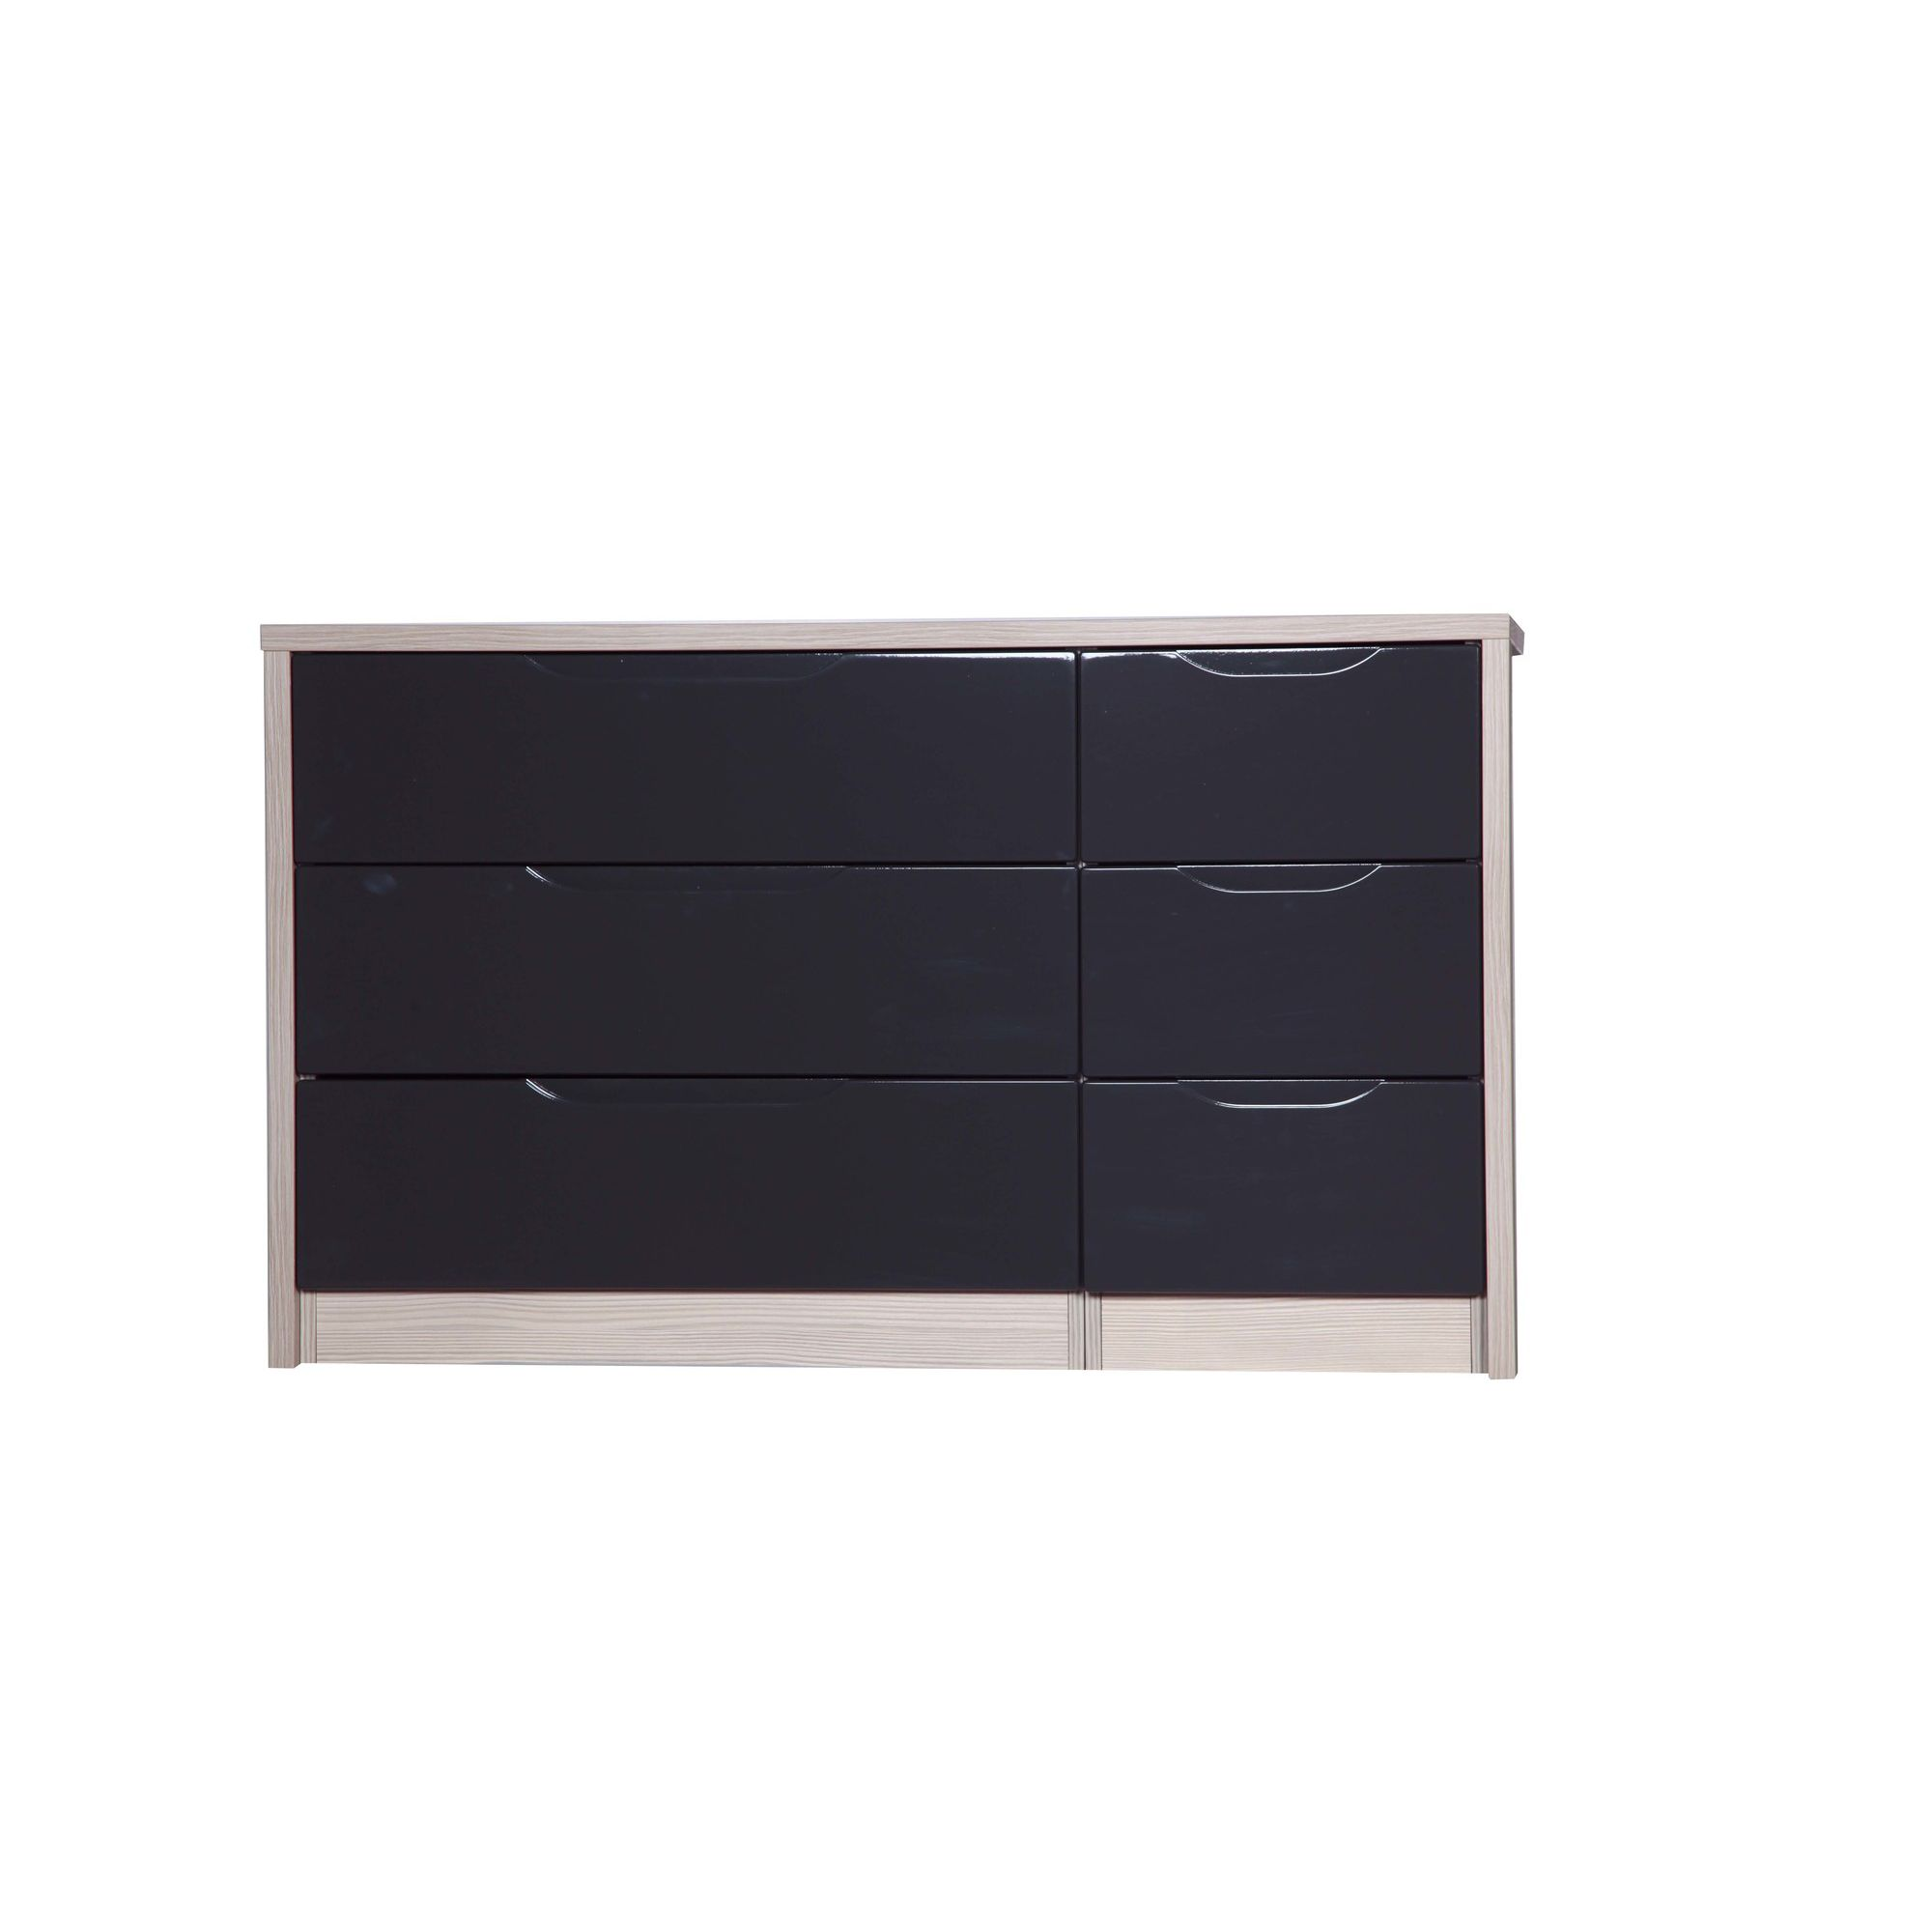 Alto Furniture Avola 6 Drawer Double Chest - White Avola Carcass With Grey Gloss at Tesco Direct